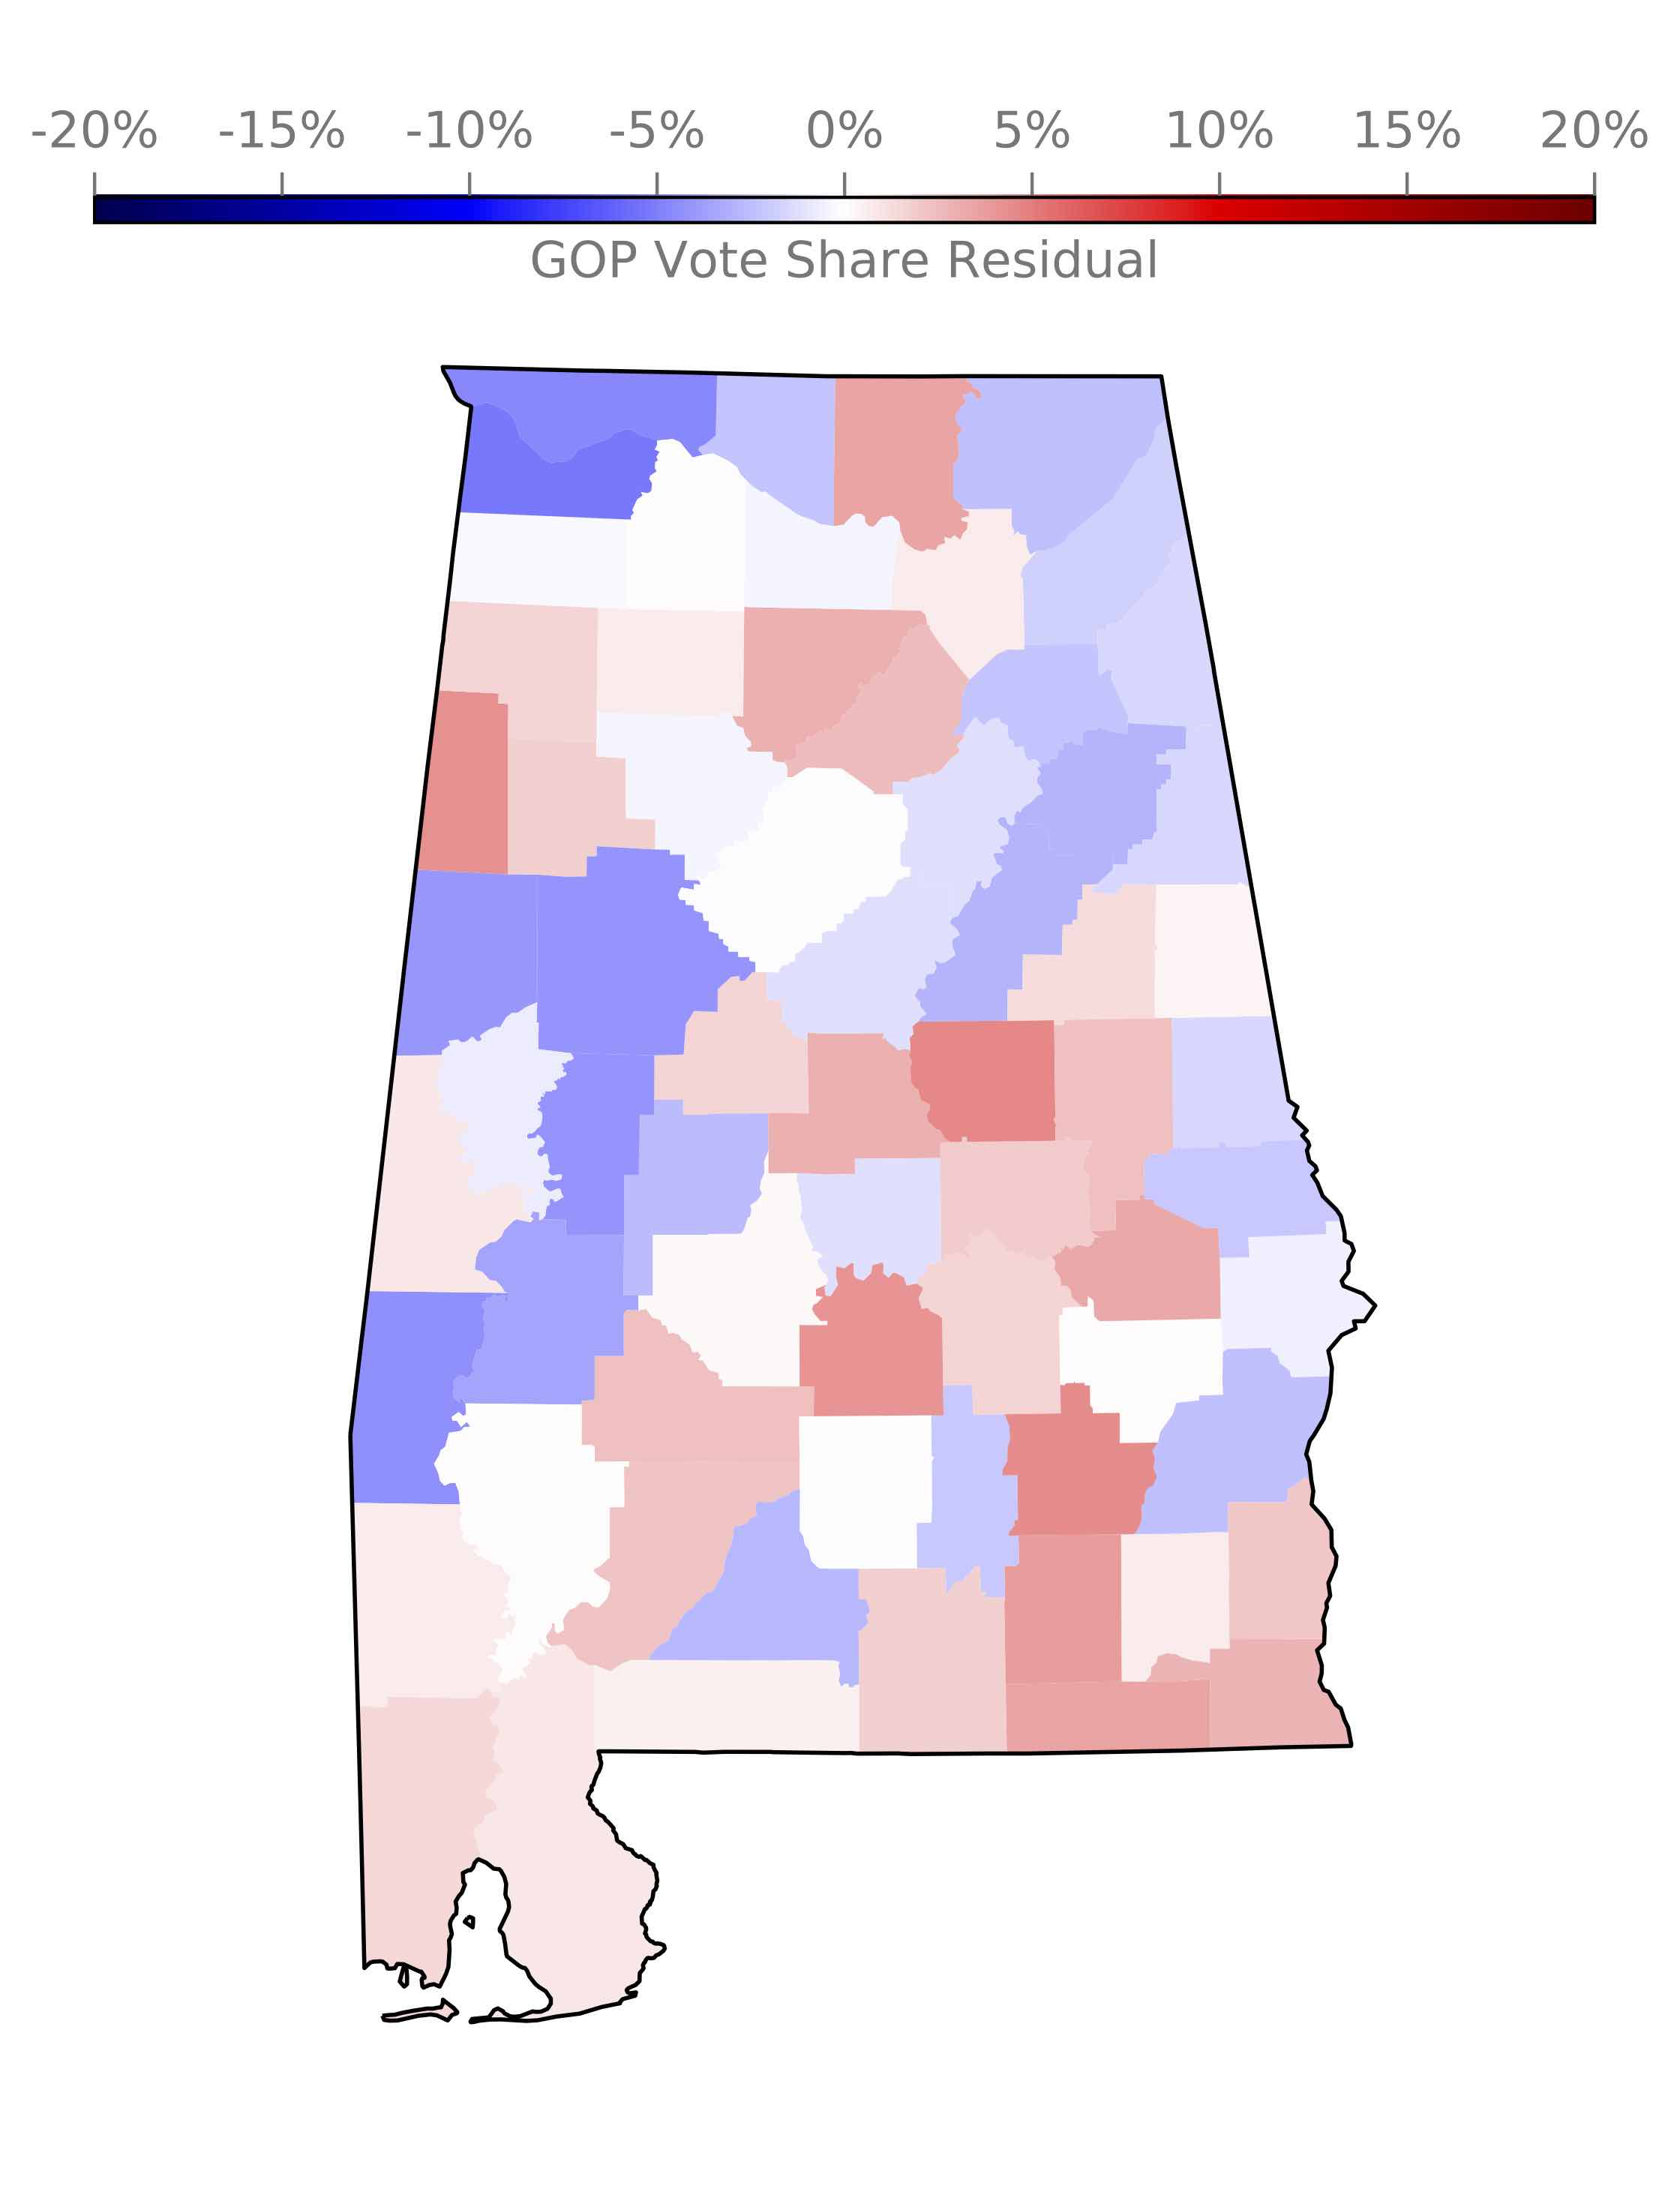 Figure 2: Residuals (data-model) from a neural network trained on the Alabama 2017 special election results. The results appear completely random as far as I can tell, which indicates that nothing suspicious was going on in Alabama. Click to download the image.